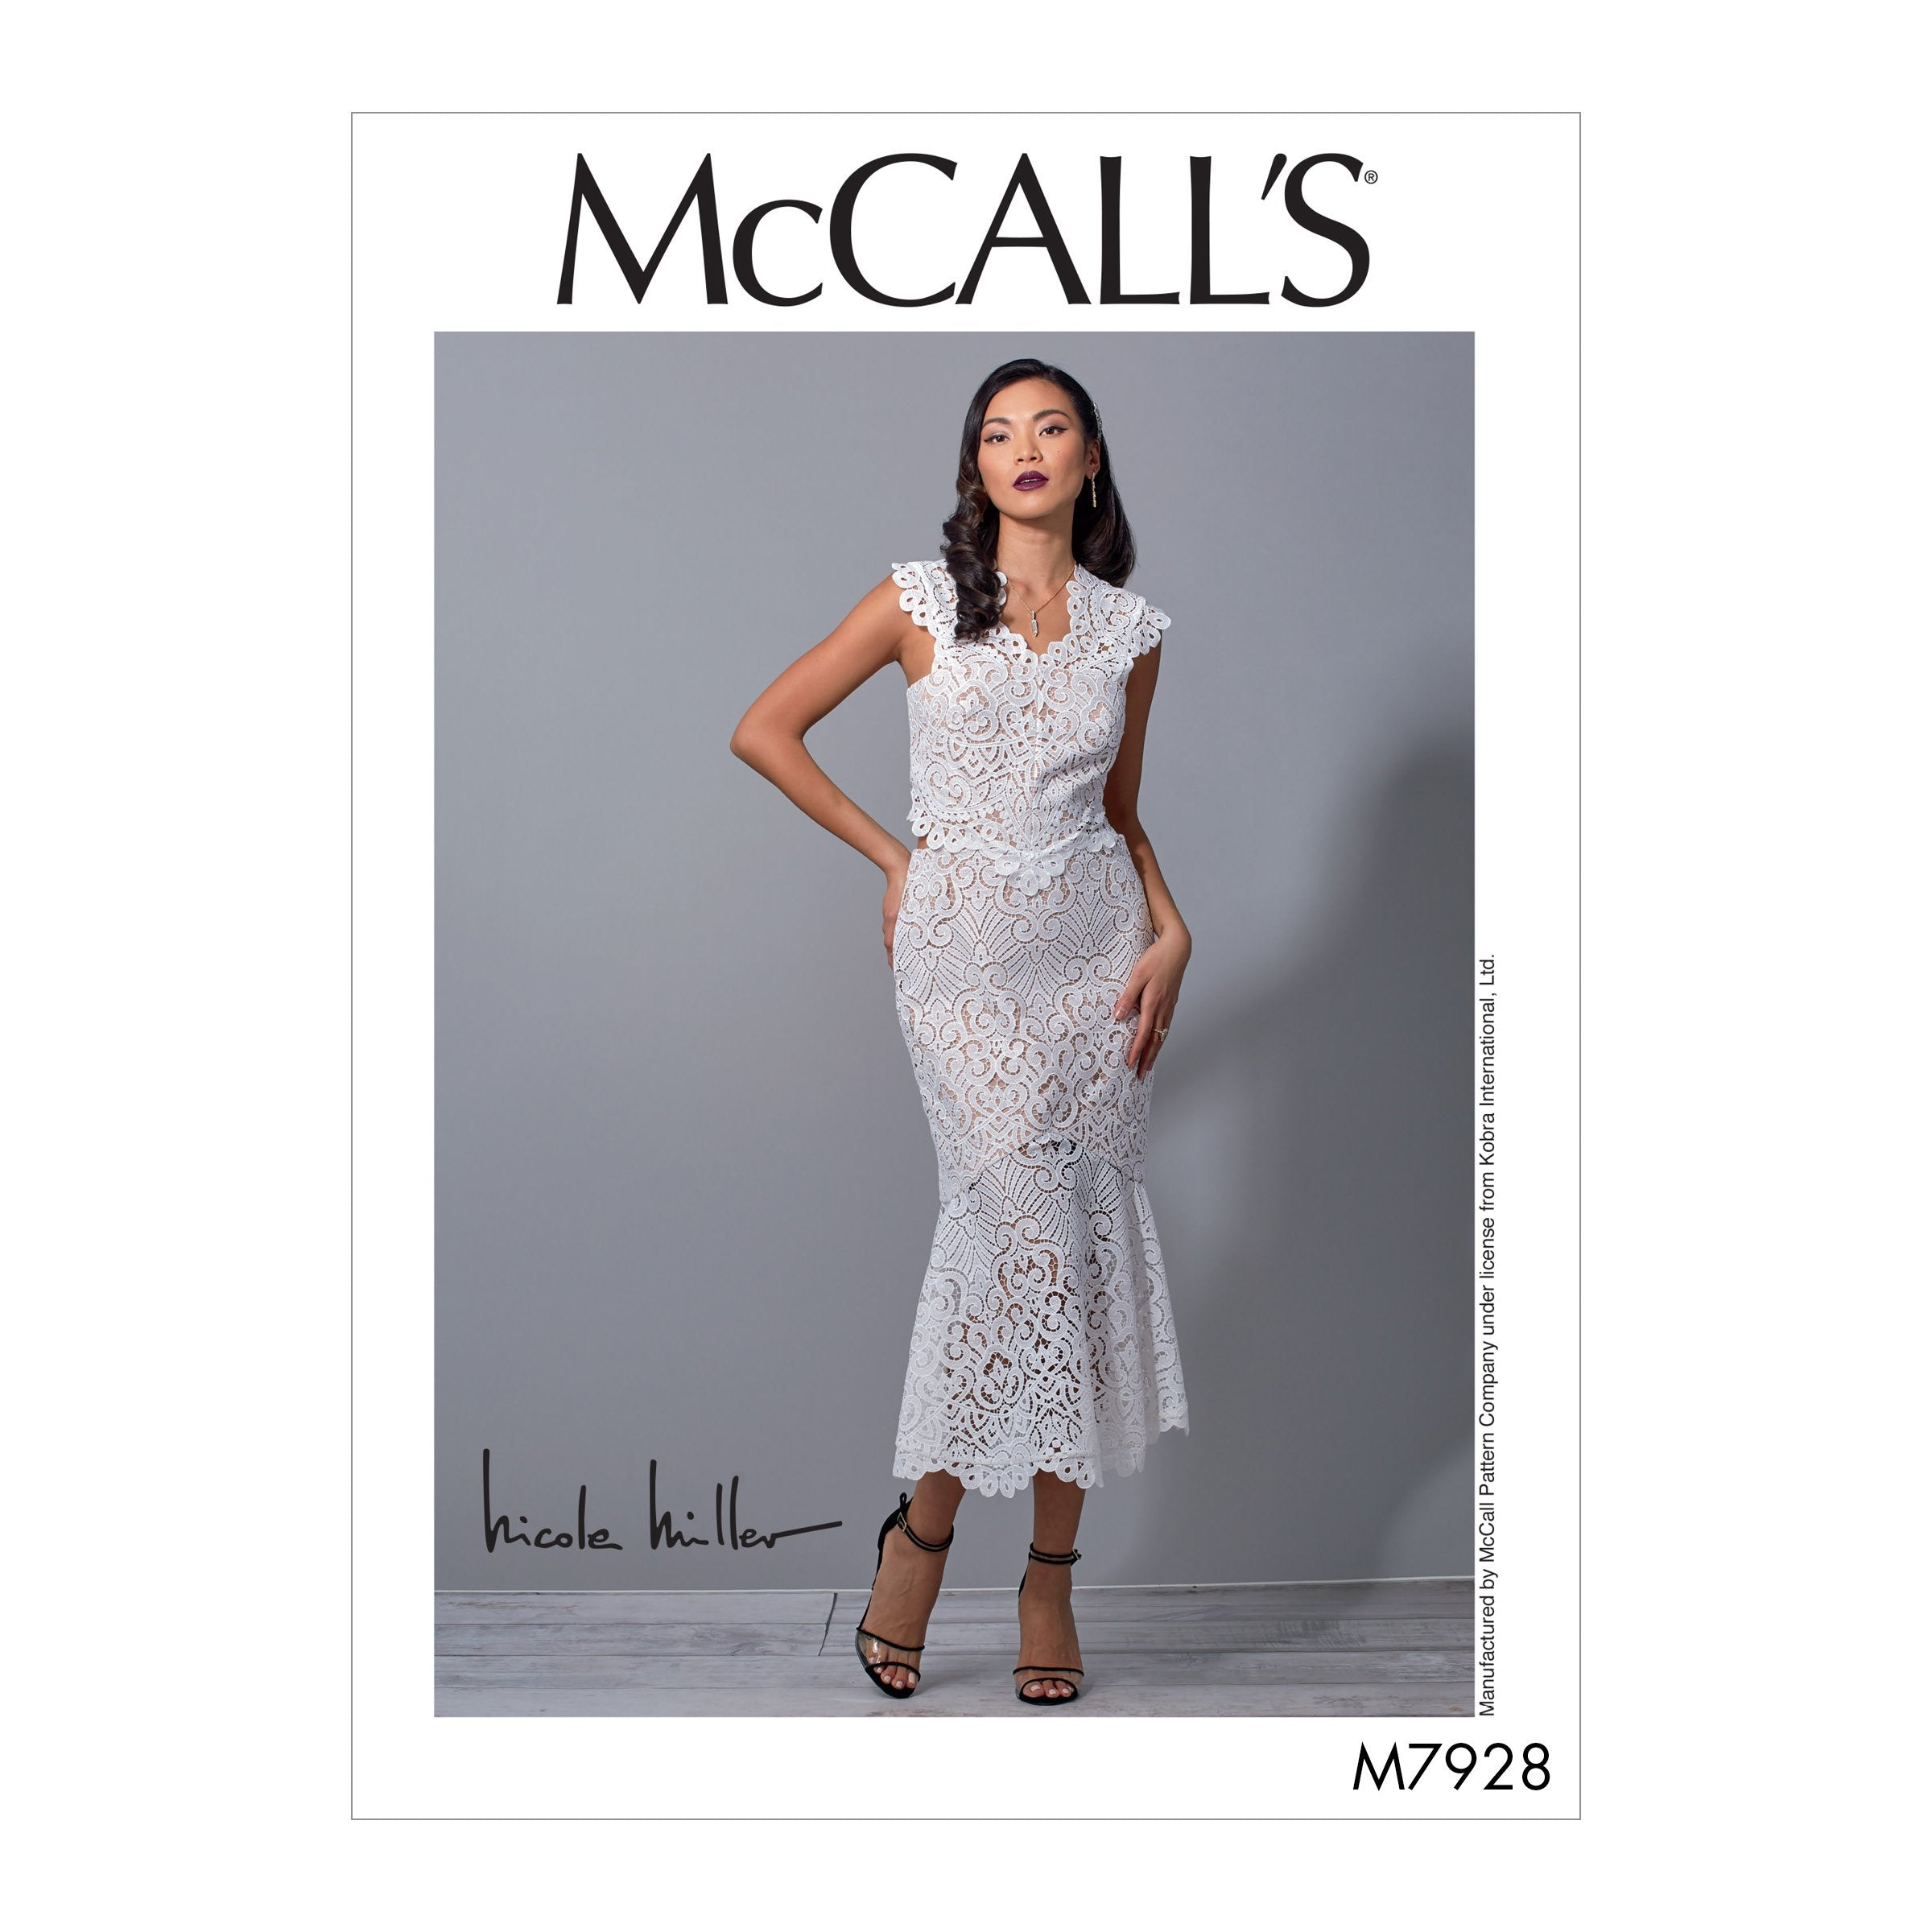 McCall's 7928 Special Occasion Dress Pattern